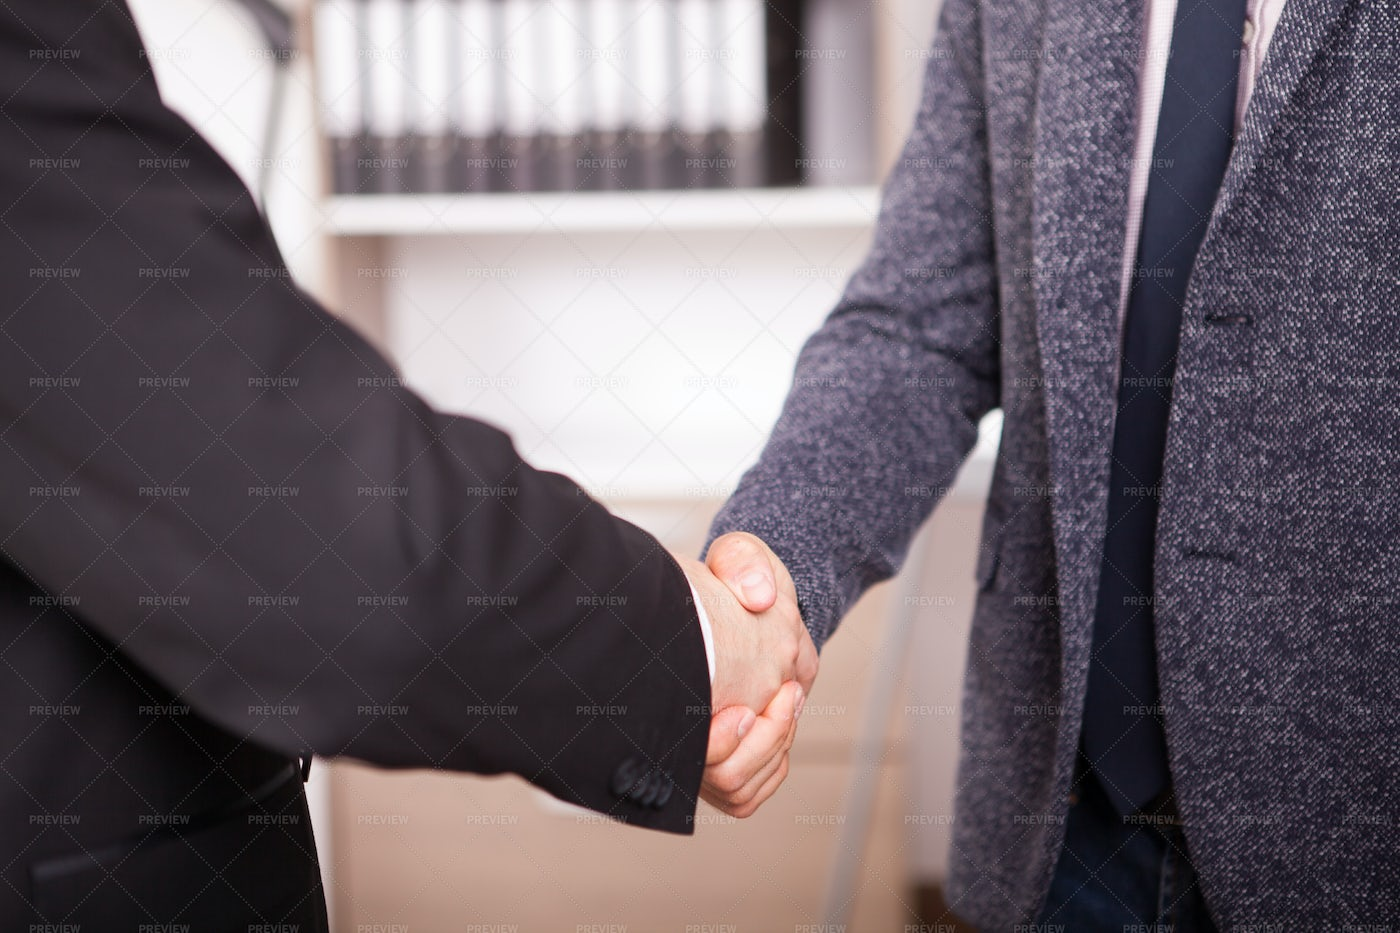 Shaking Hands In Corporate Office: Stock Photos